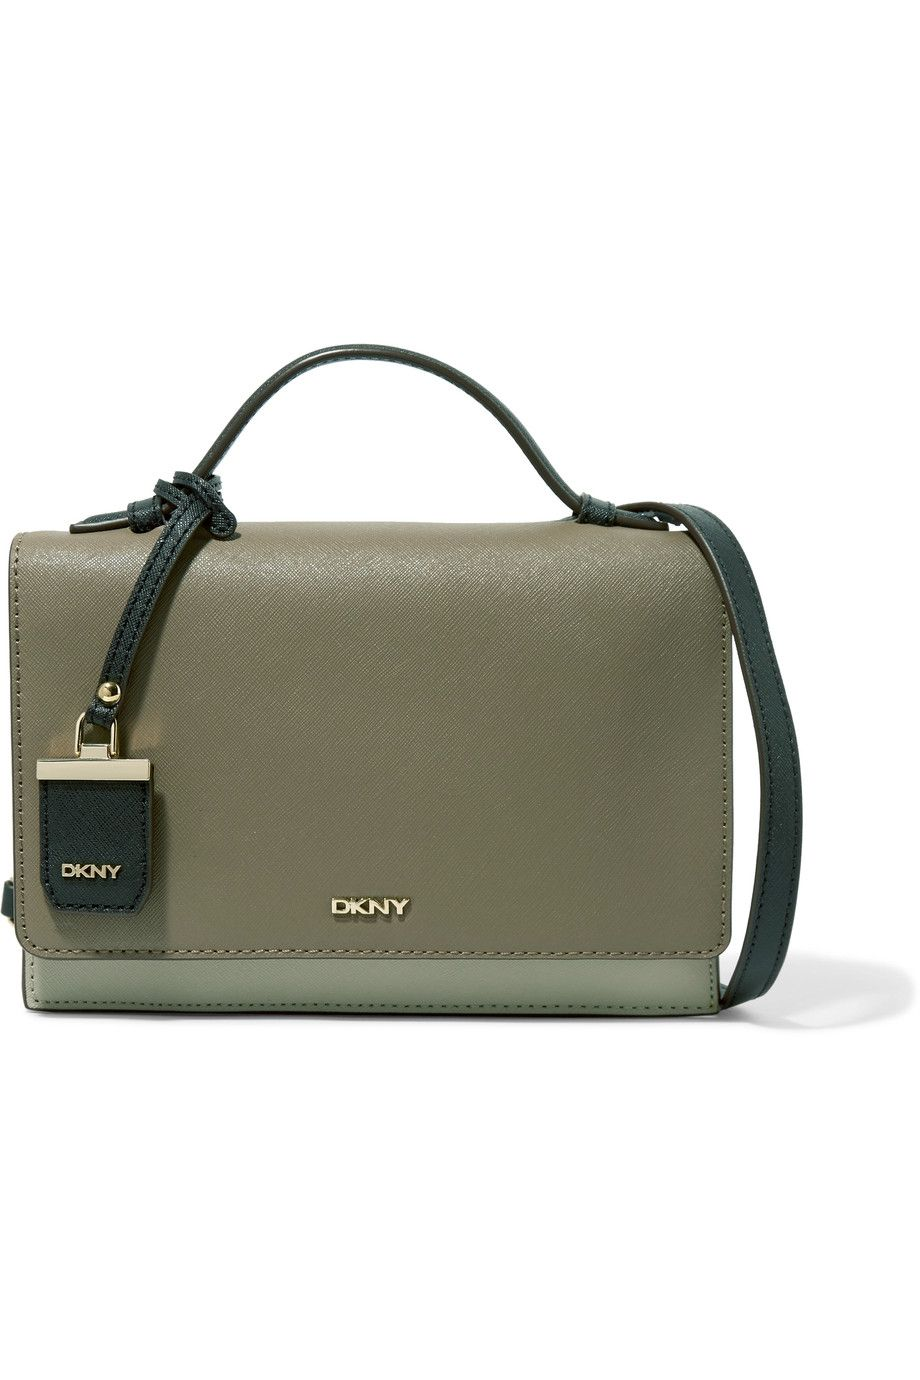 2718b6a4aebe DKNY .  dkny  bags  shoulder bags  hand bags  leather